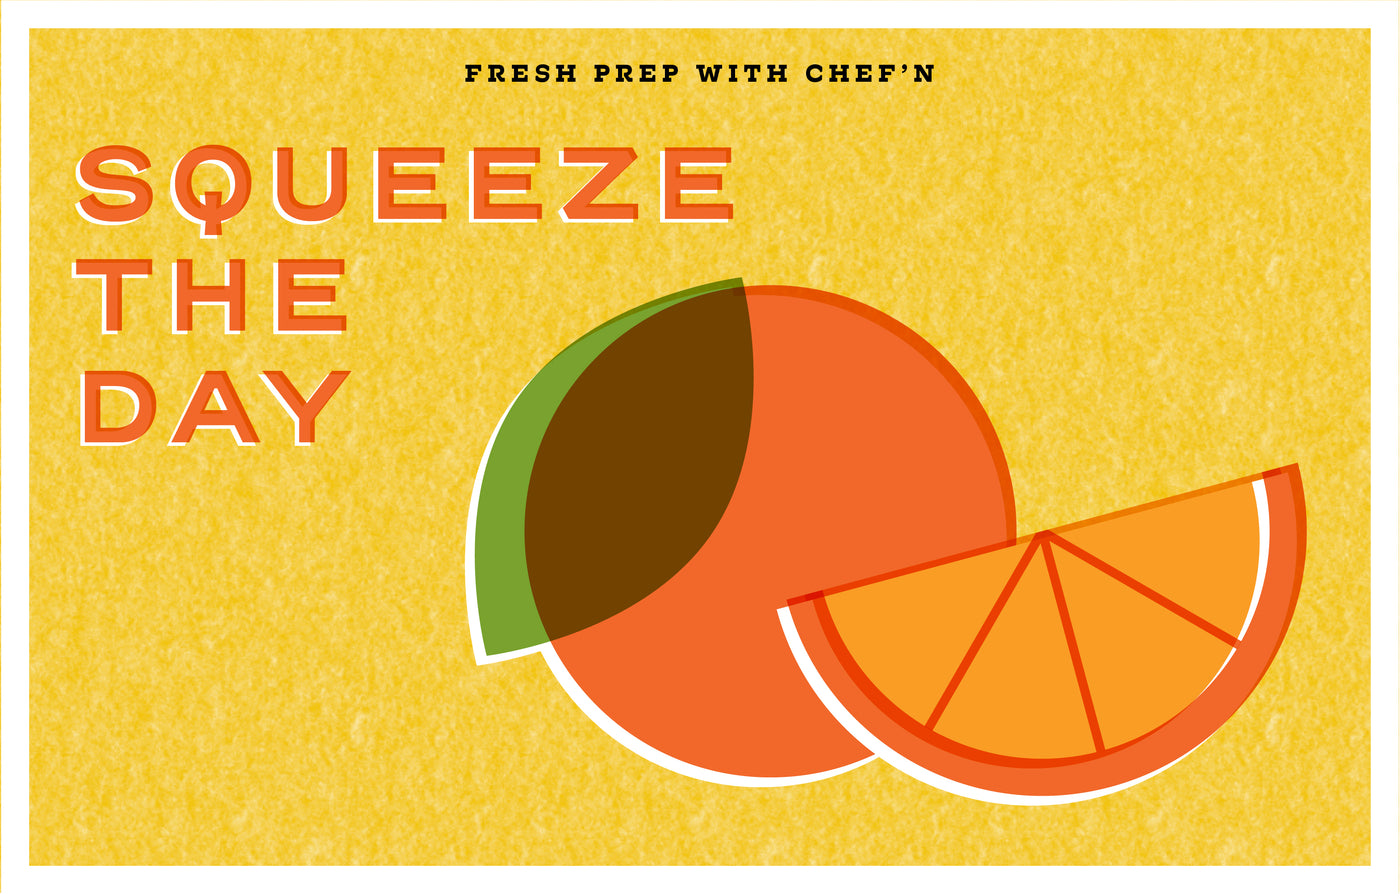 Squeeze the Day!